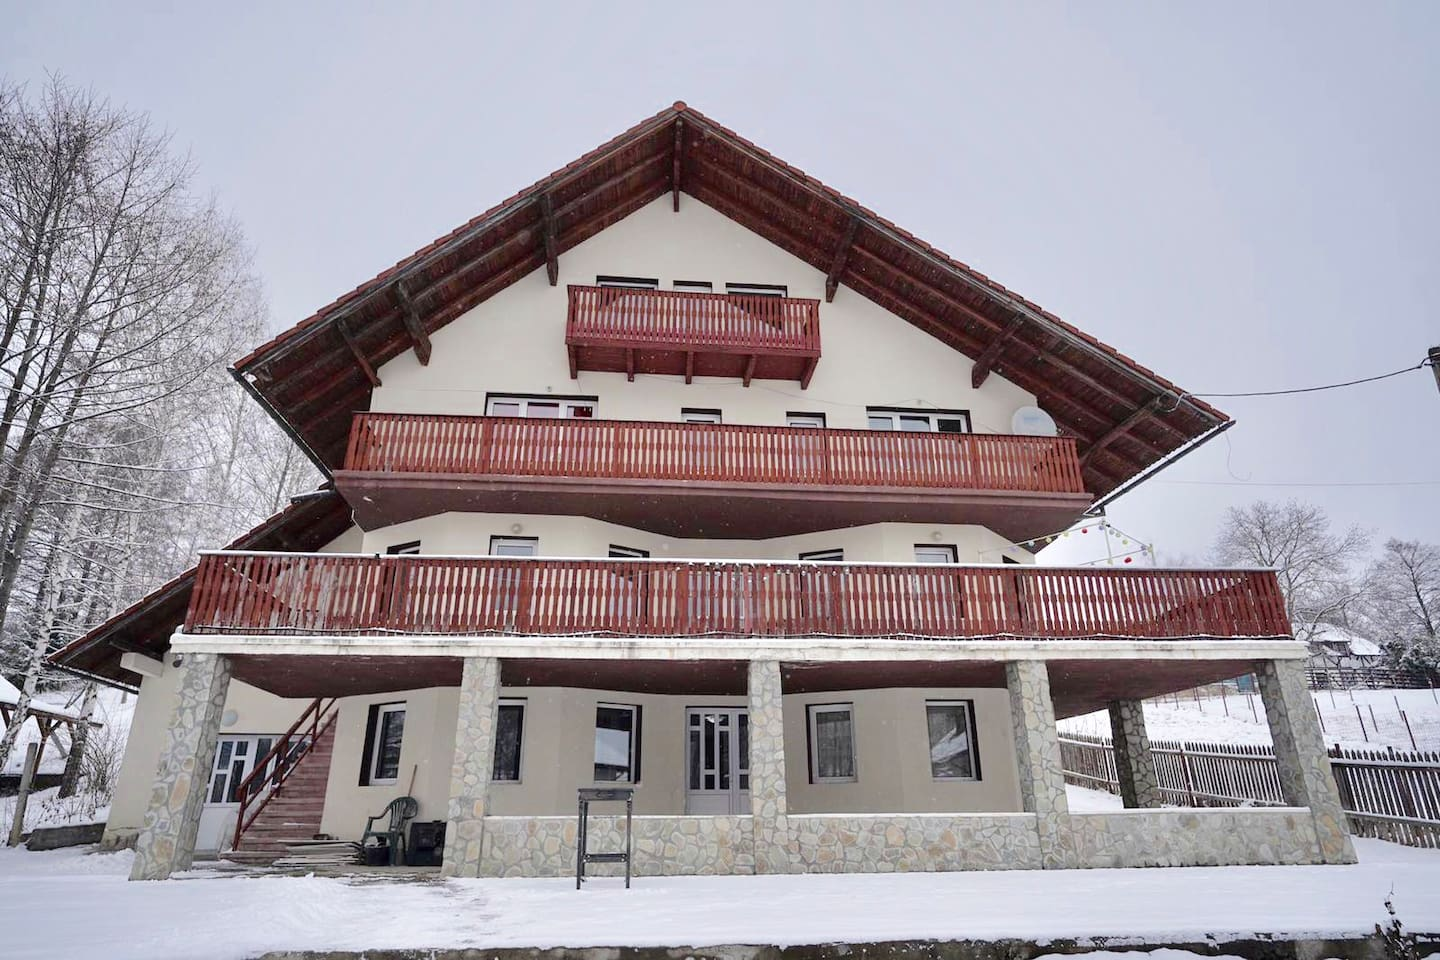 Pension type witch holds 9 bed rooms: First floor- bed rooms with private bath room, kitchen and outdoor terrace